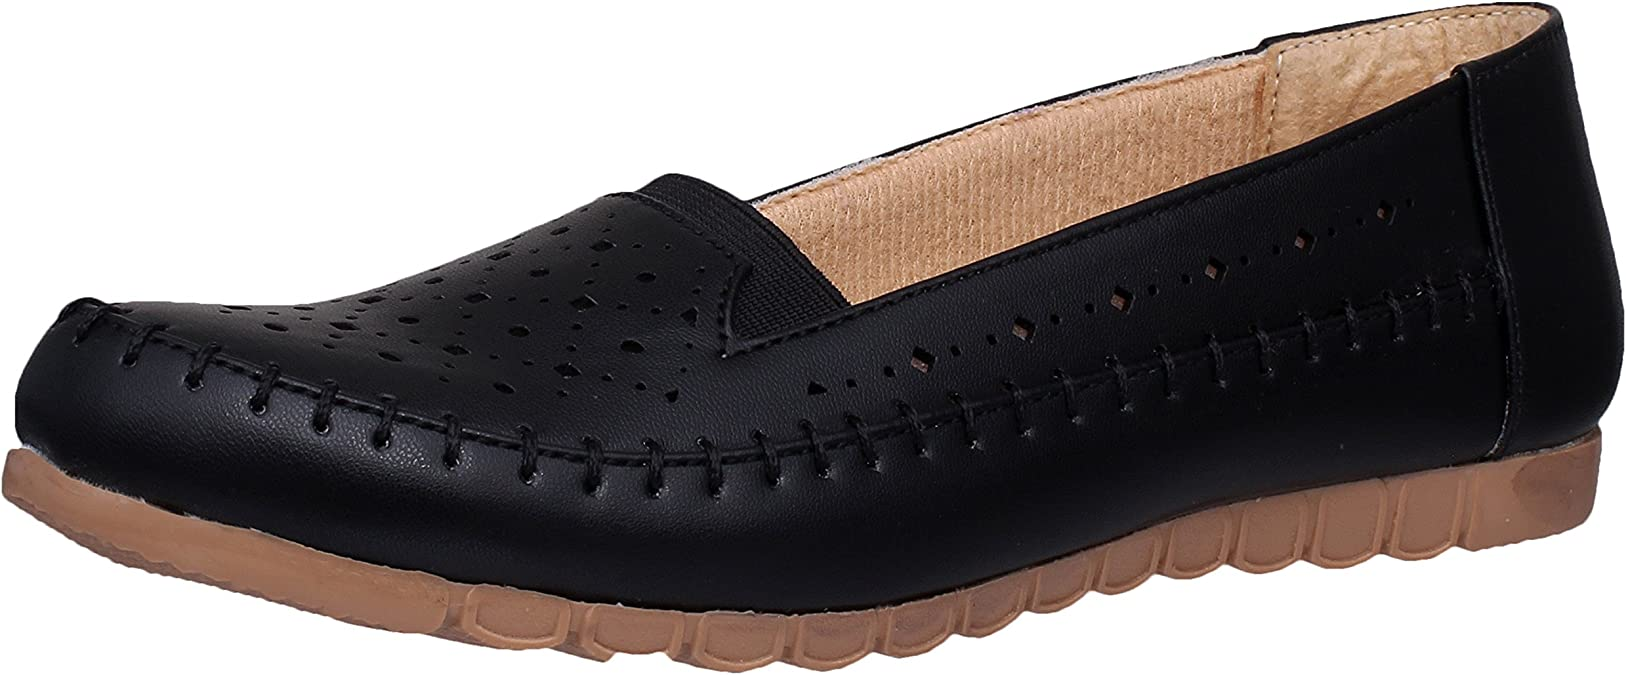 1 WALK Women's Faux Leather Loafers Women's Ballet Flats at amazon